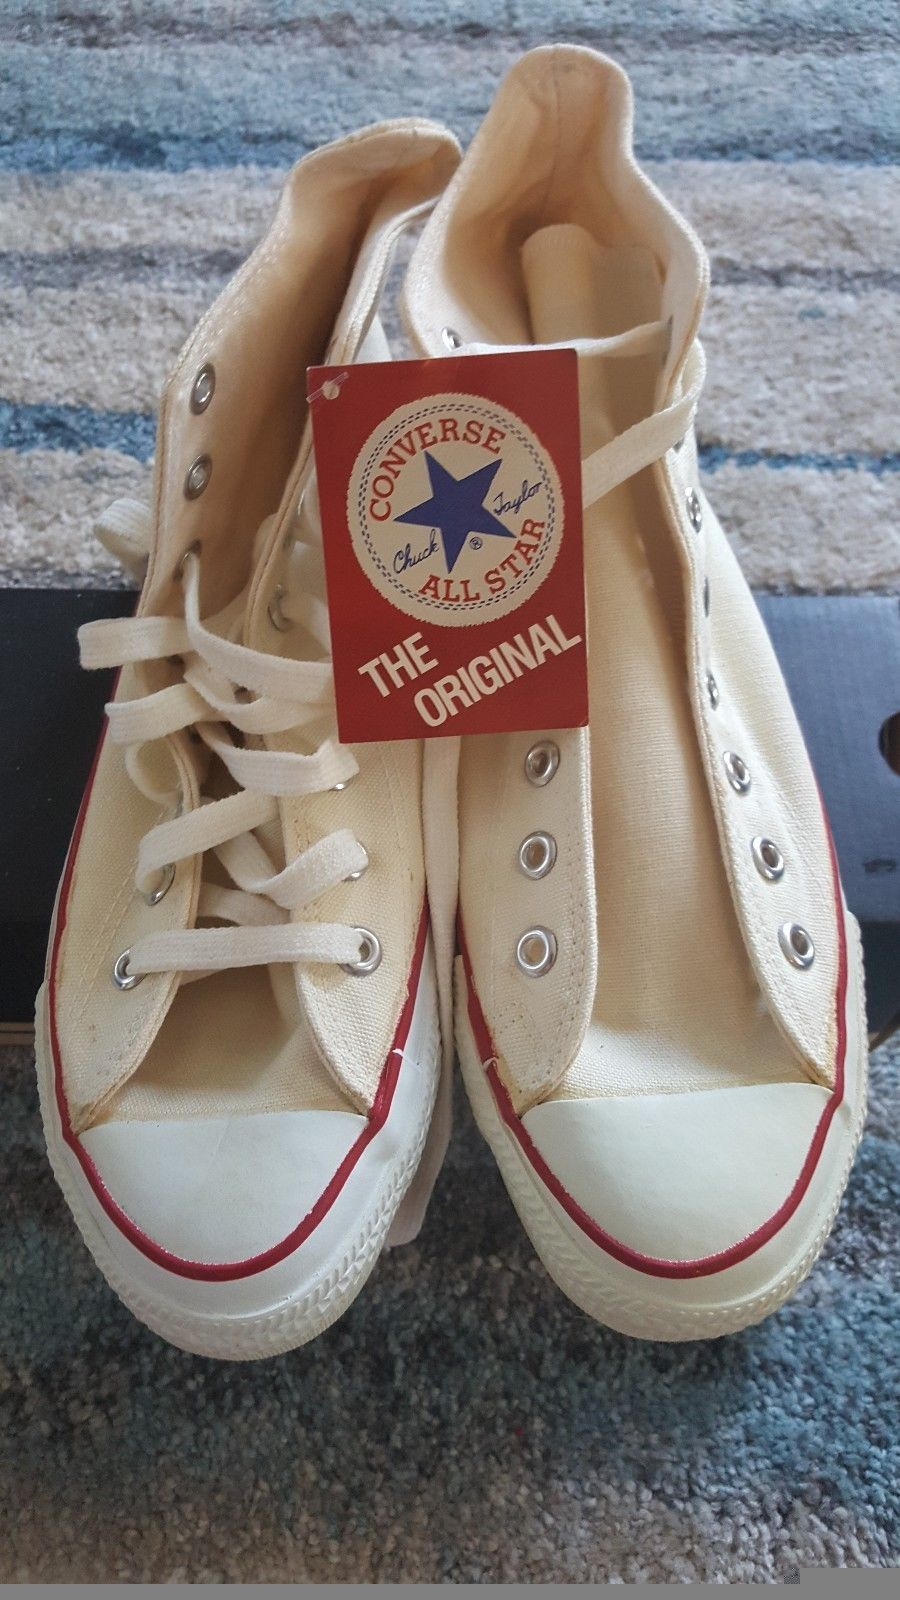 8041f6a07eff Details about VINTAGE 70s CONVERSE CHUCK TAYLOR ALL STAR HIGH TOP ...